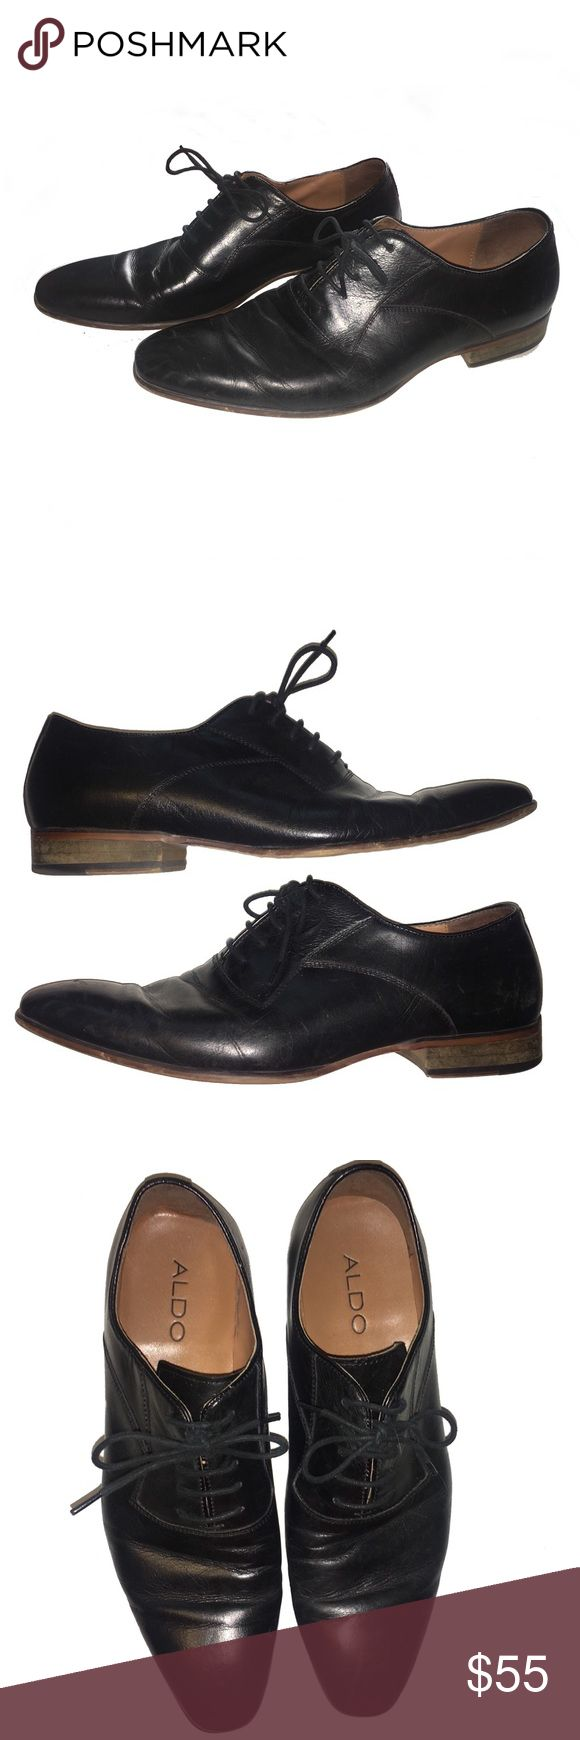 ALDO Men's Black Lace Oxford Dress Shoes Men's lace up oxford dress shoes Tan leather inside Black leather outside Laces Wooden heel Worn a couple of times otherwise great condition! Aldo Shoes Oxfords & Derbys